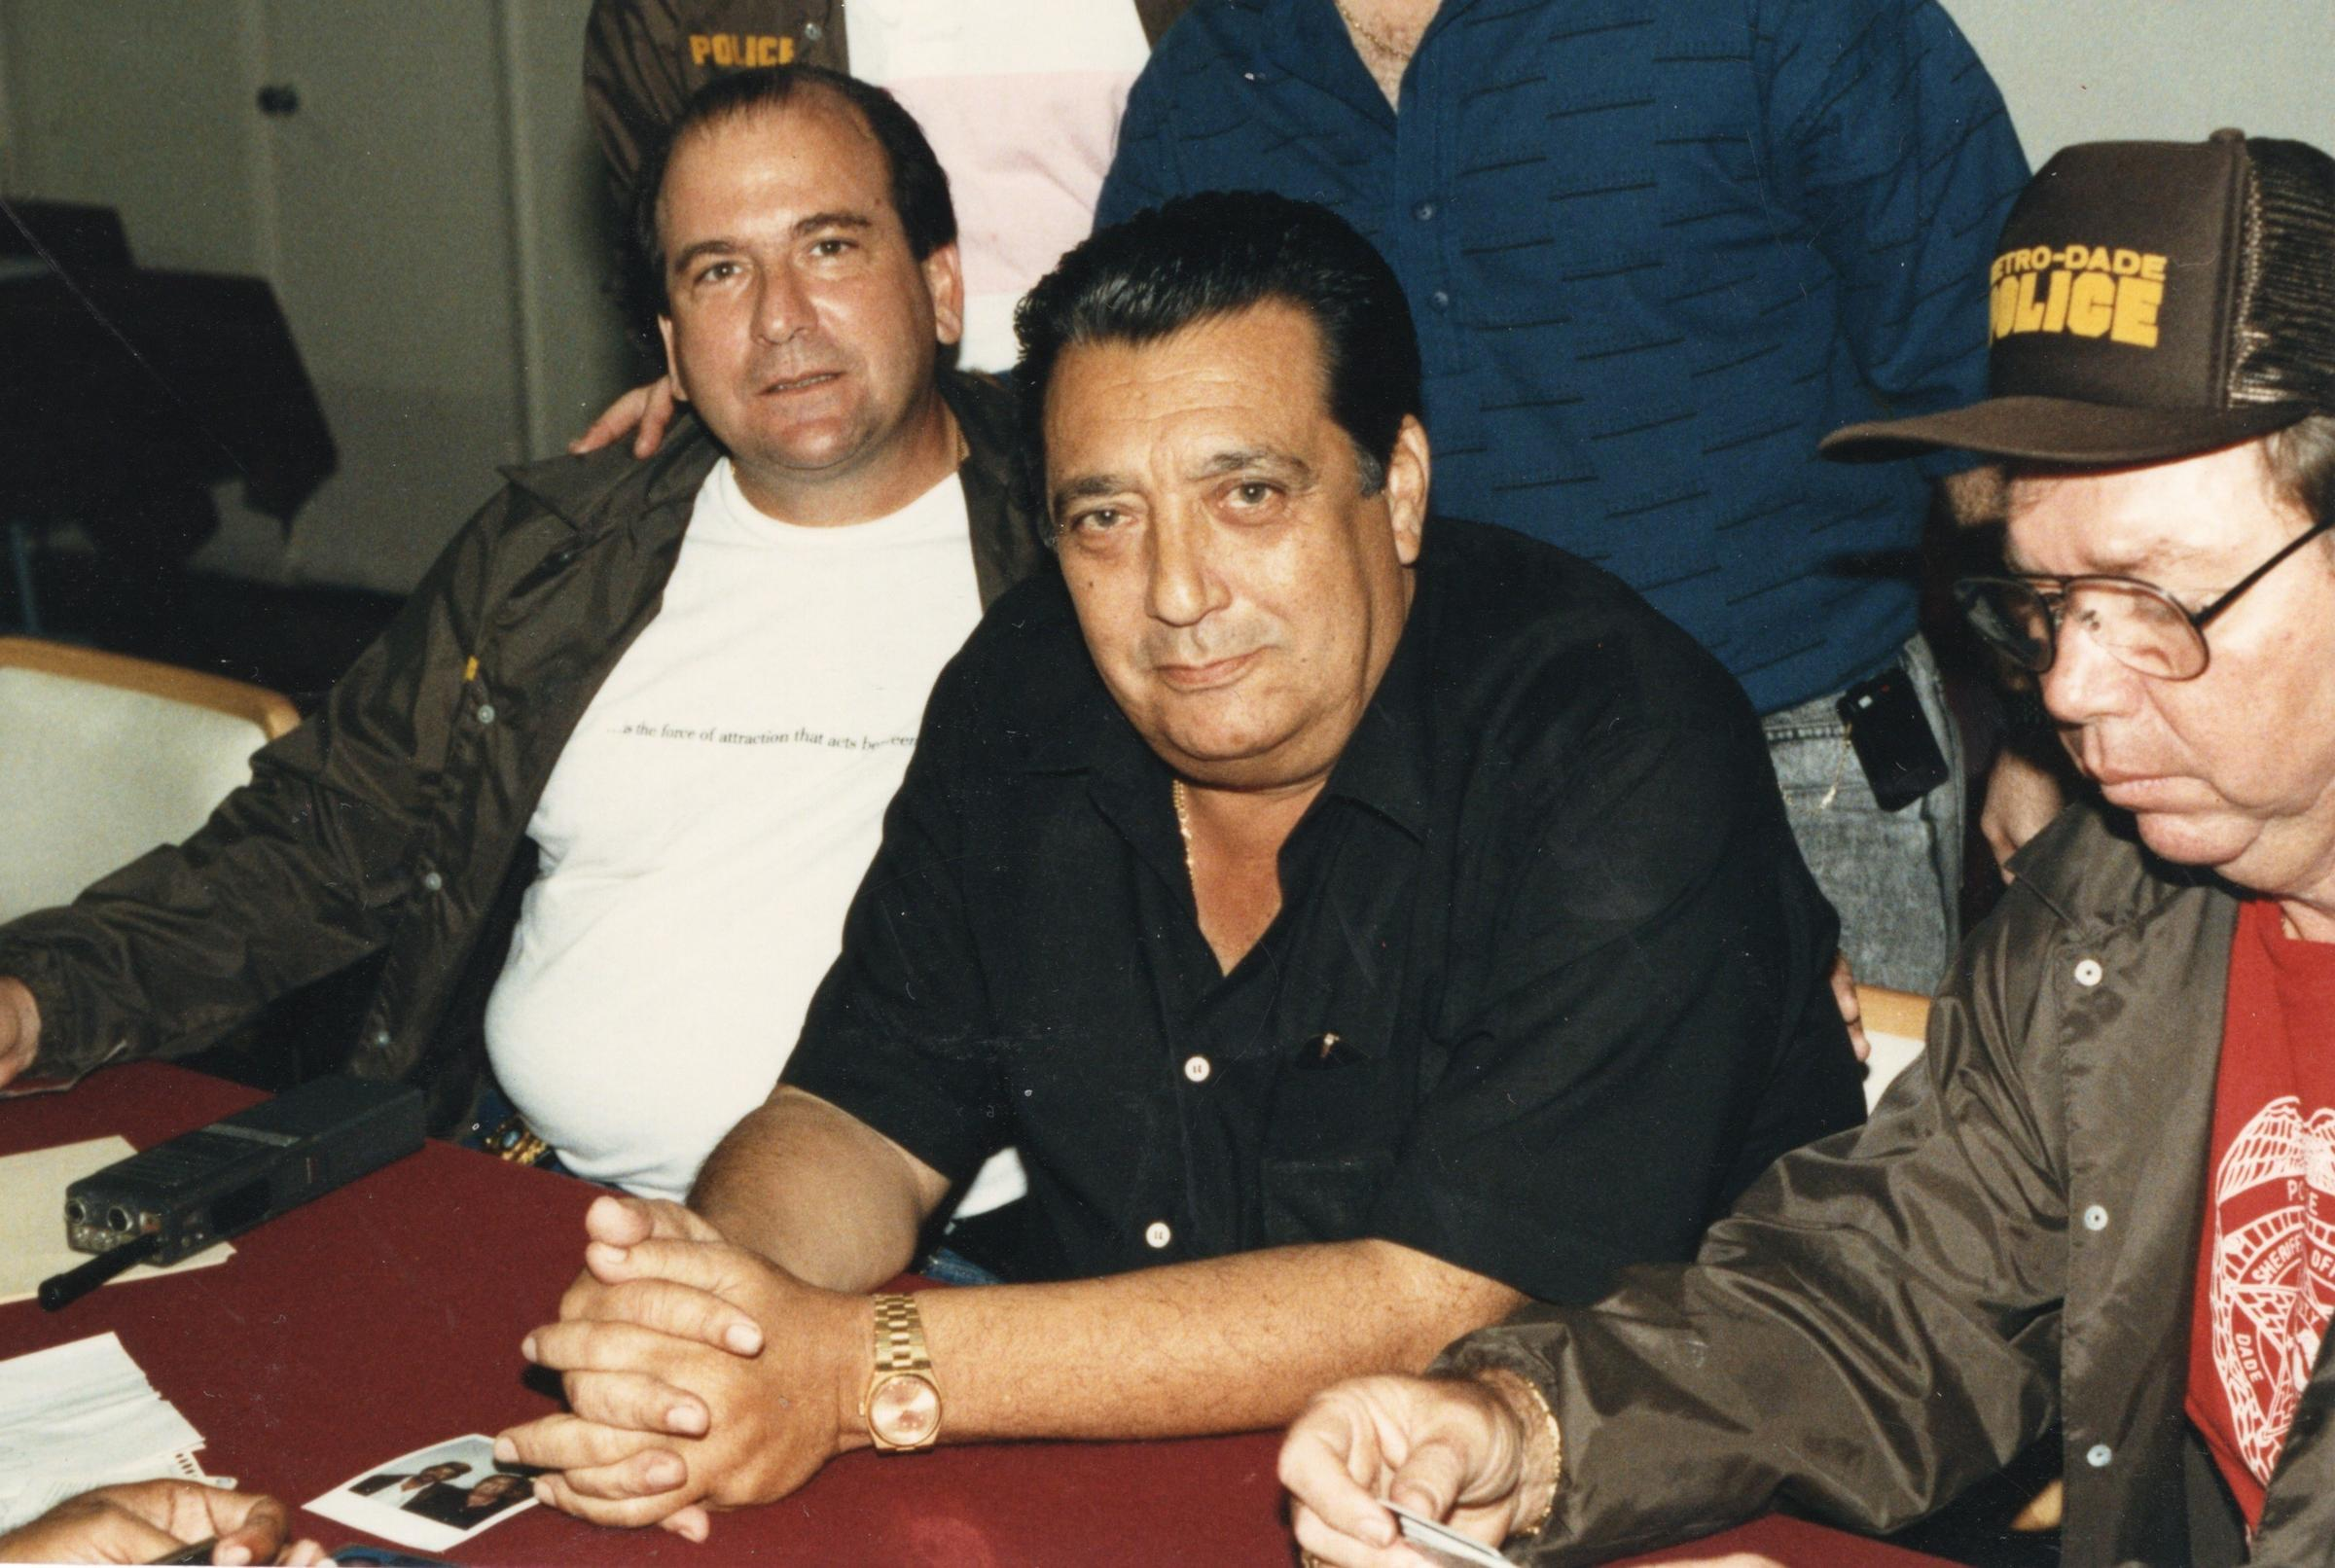 The late Corporation mob boss Jose Miguel Battle (center) surrounded by  Miami-Dade police after his 2004 arrest. (Battle died in prison in 2007, ...